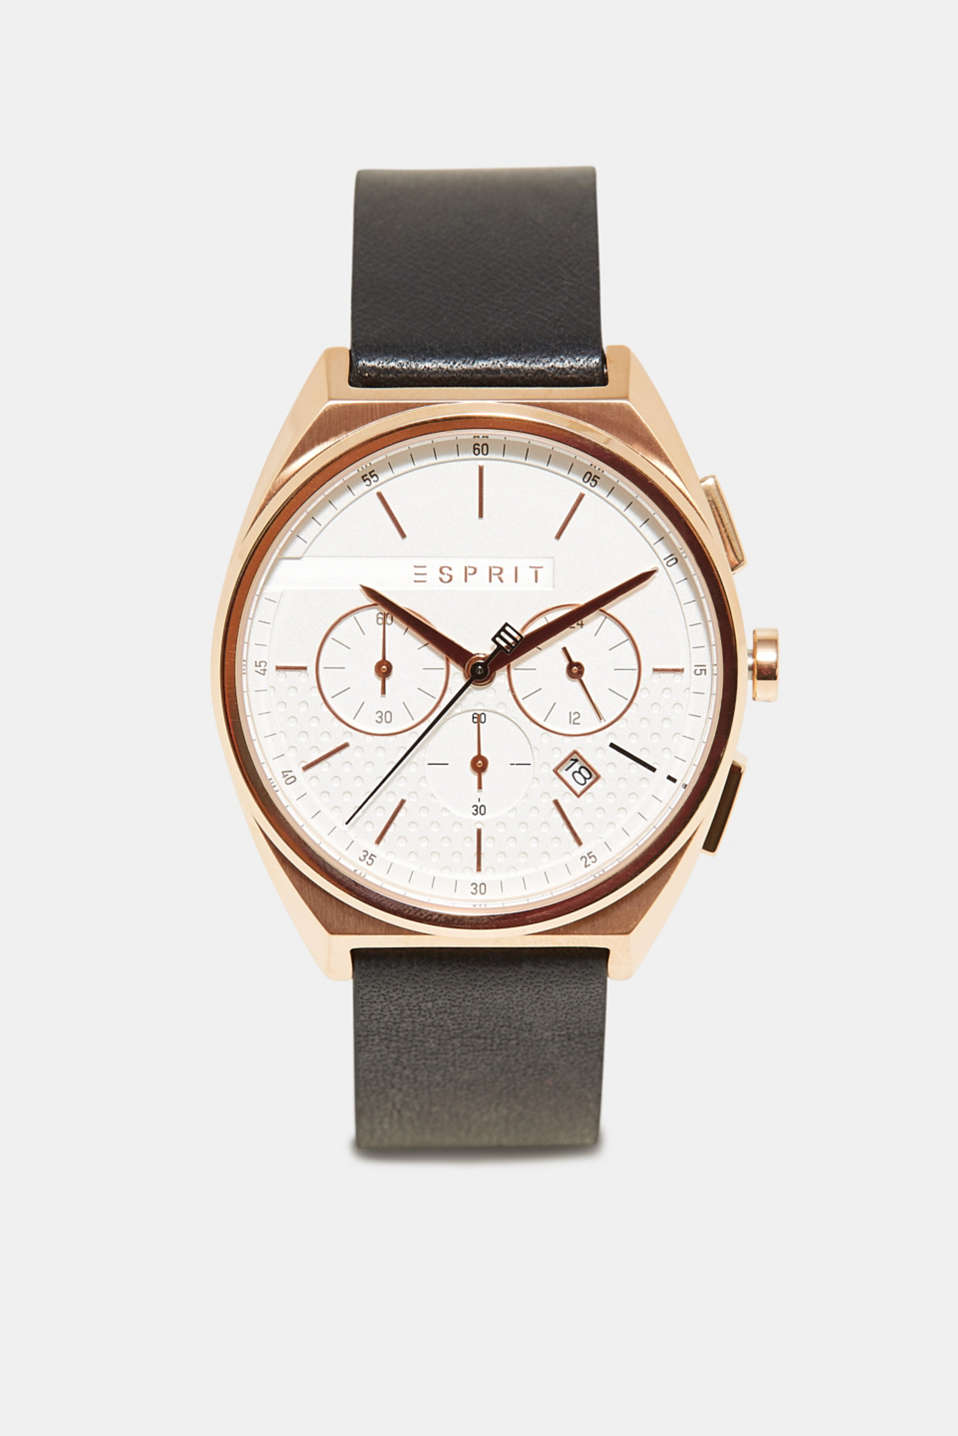 Esprit - Mens chrono with a perforated dial